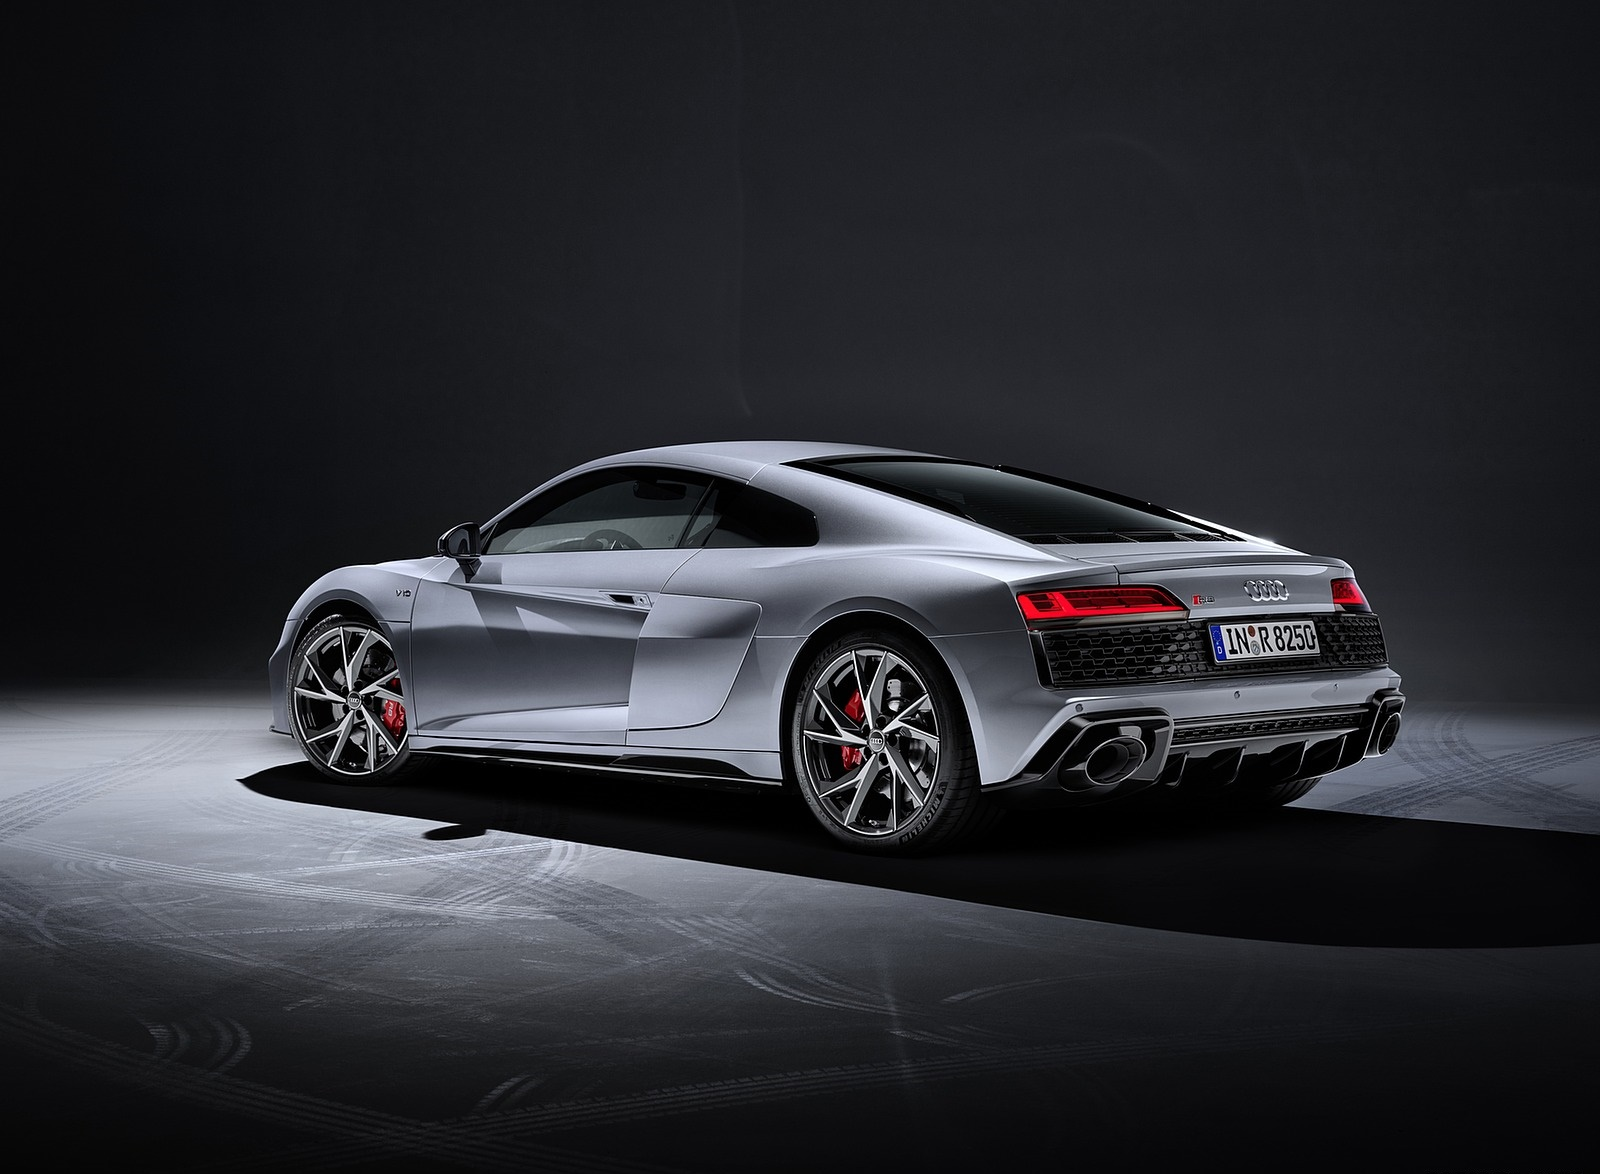 2020 Audi R8 V10 RWD Coupe (Color: Florett Silver) Rear Three-Quarter Wallpapers #24 of 32